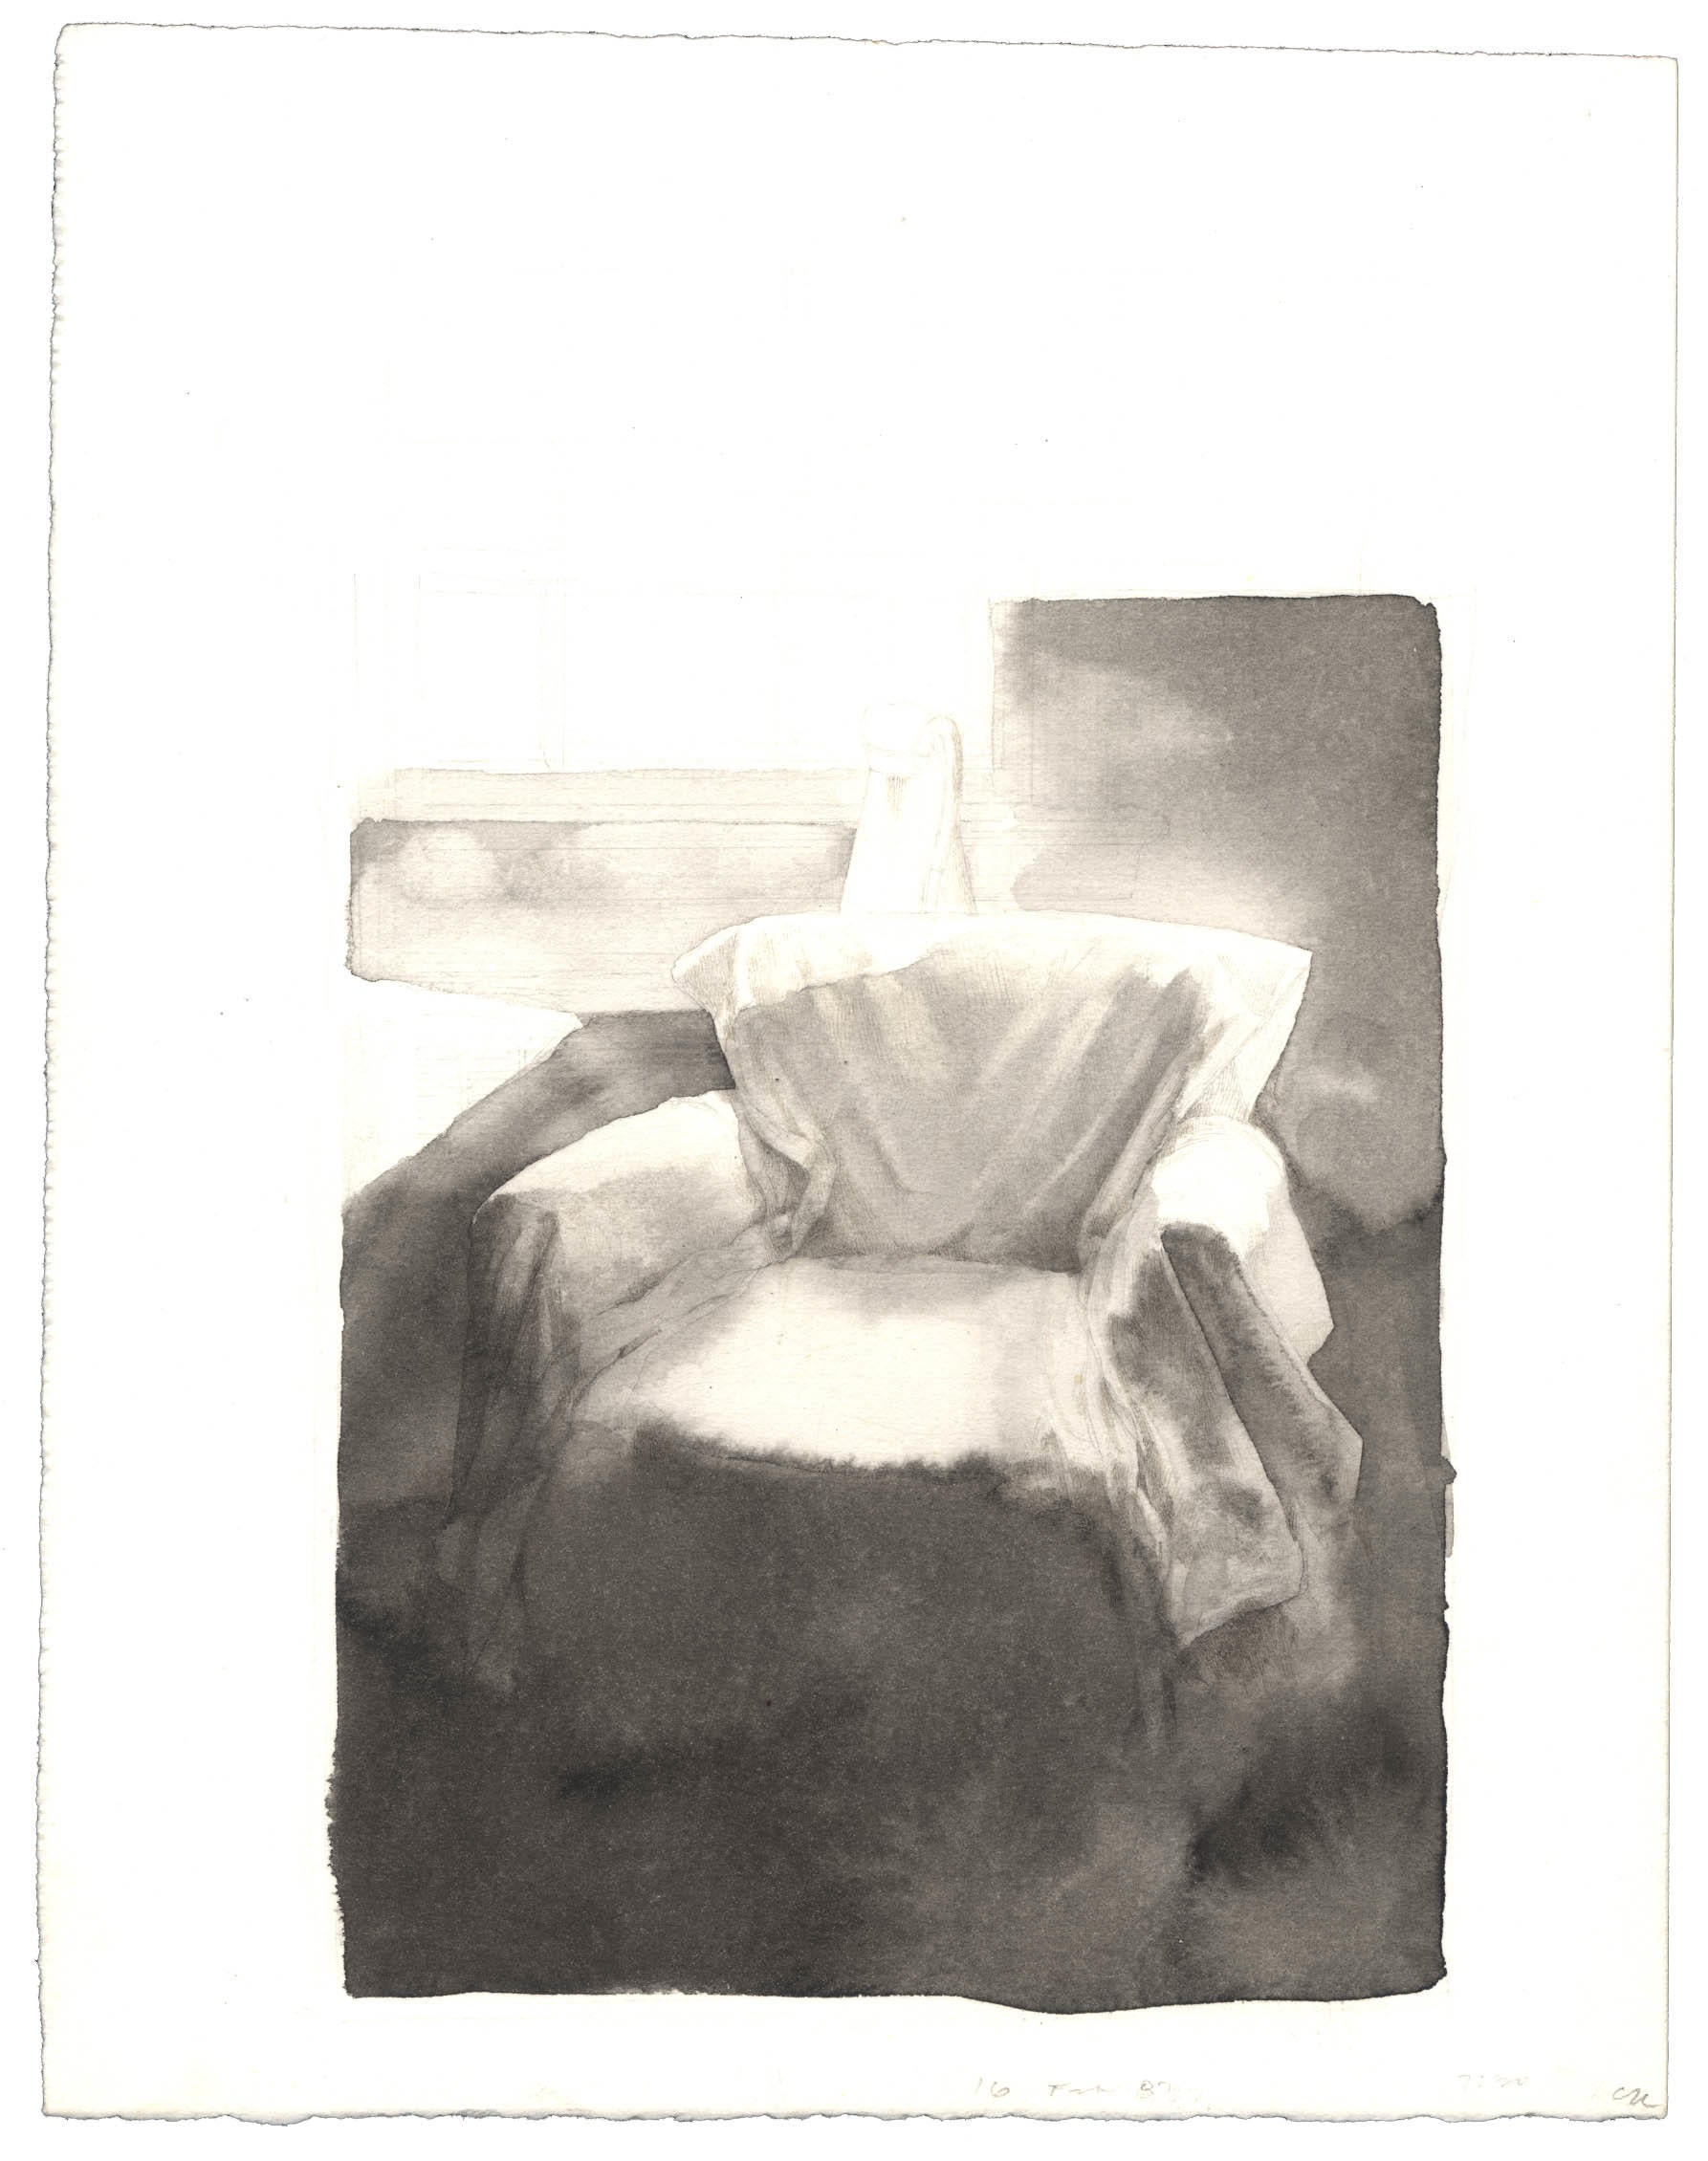 Study for Draped Chair: Watercolor image